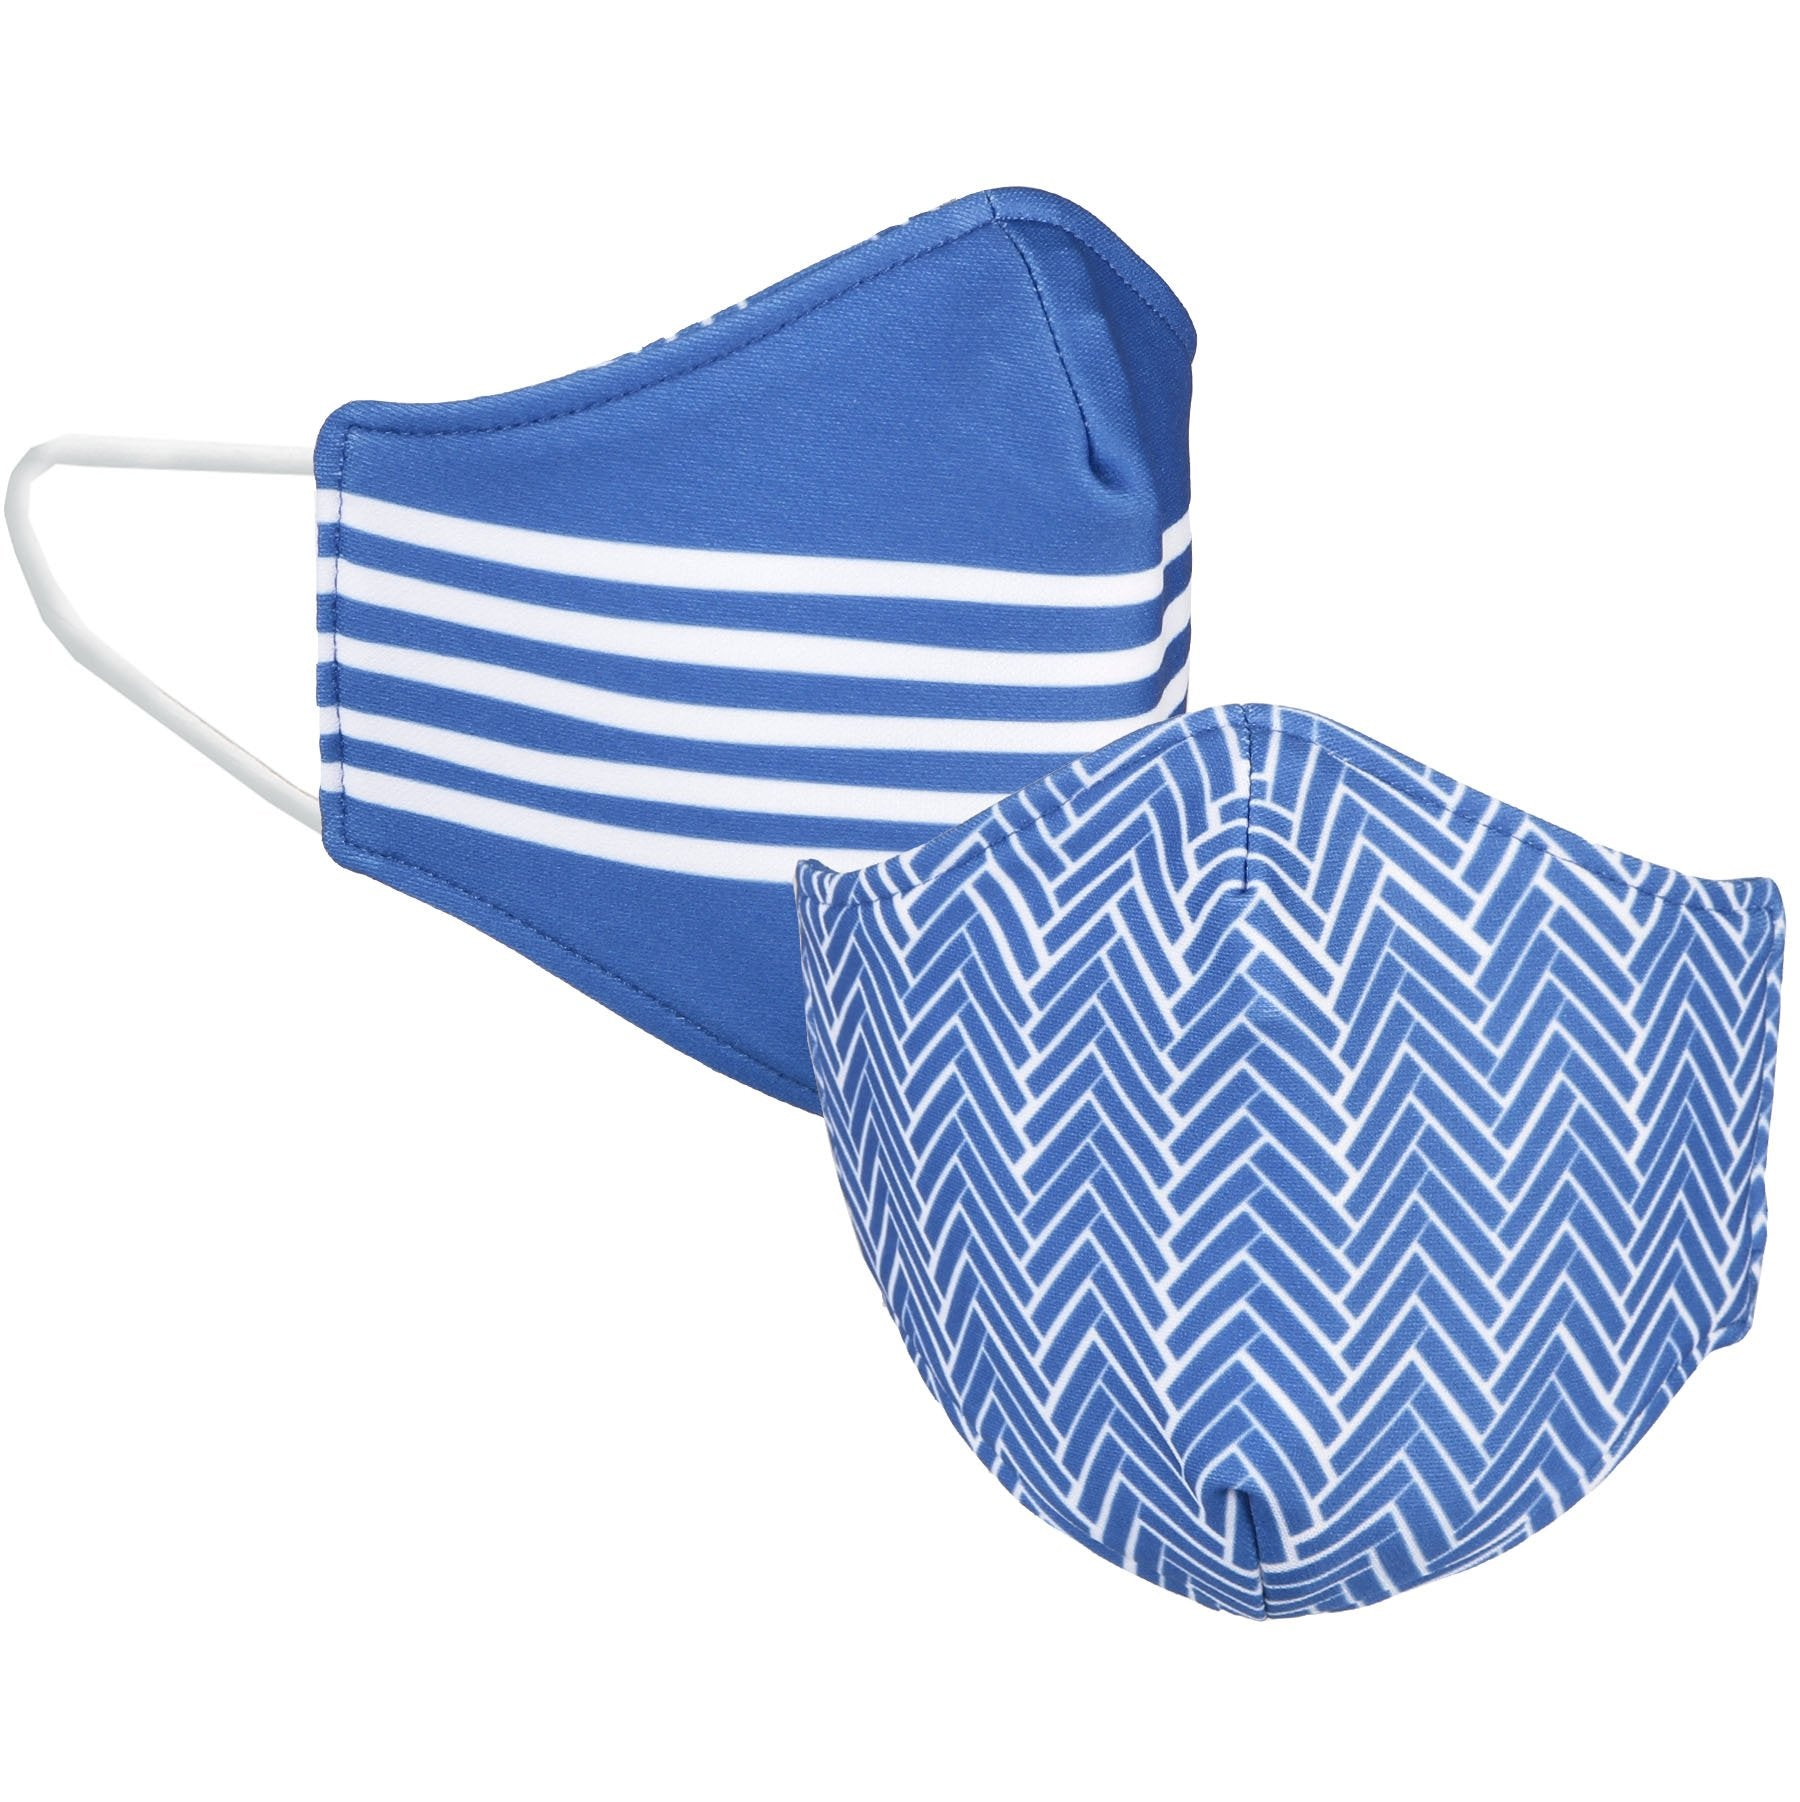 Royal and White Reversible Face Mask